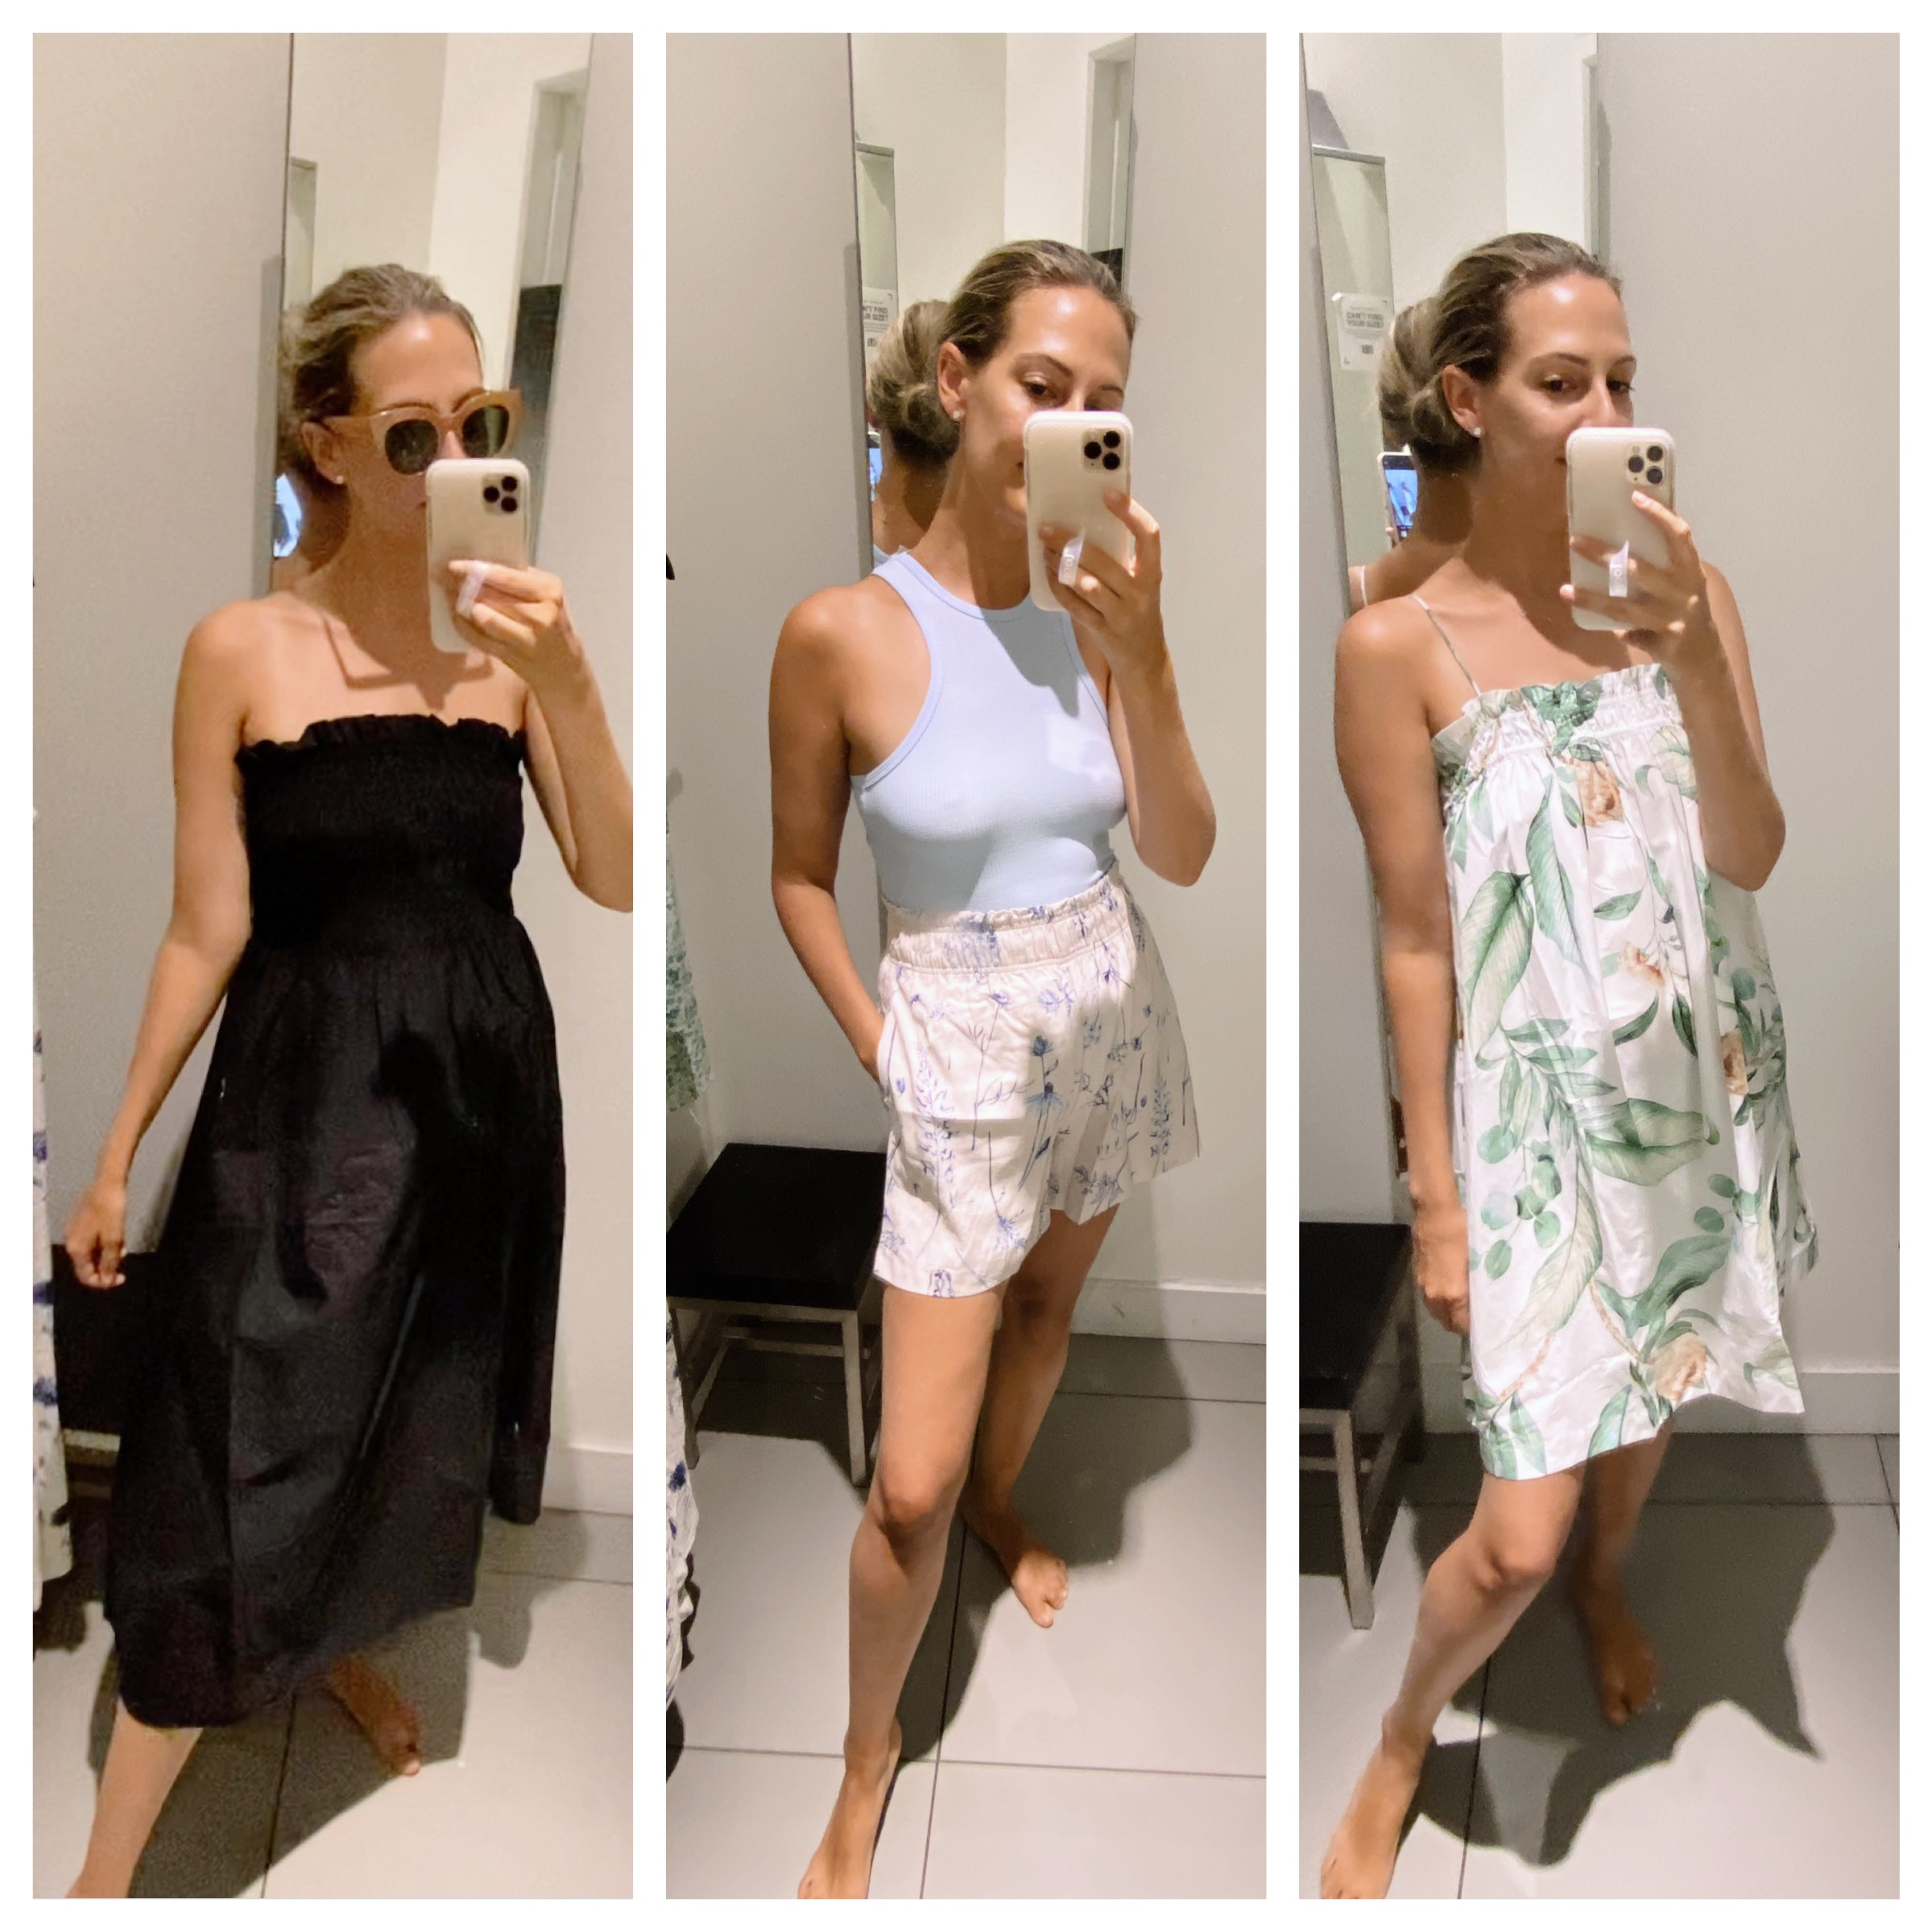 collage photo of woman taking a selfie and trying on clothes and sharing Tips for Shopping at Hm